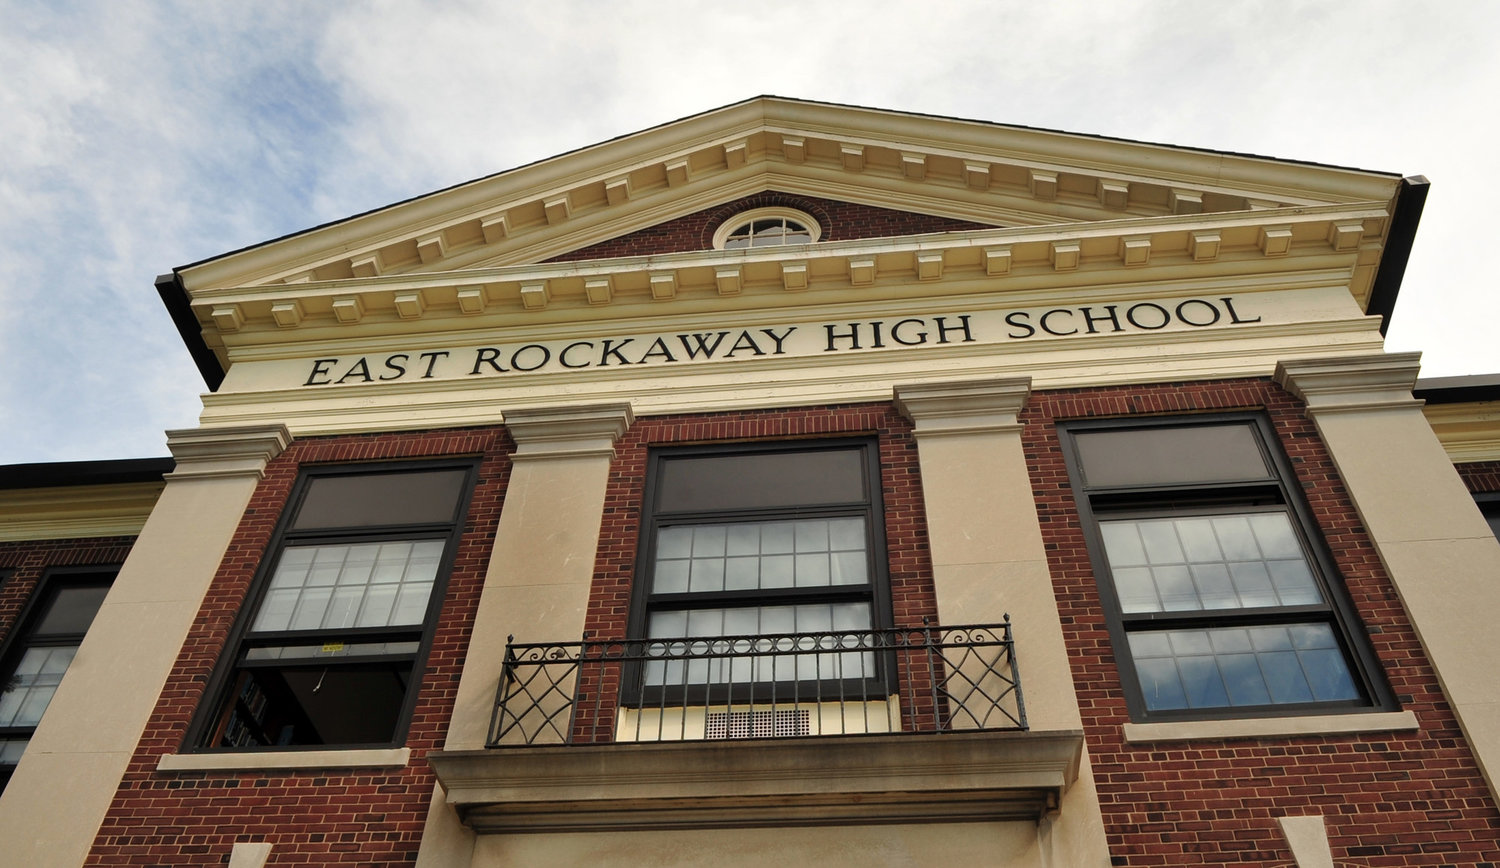 East Rockaway voters approved the district's $40.2 million budget for the 2019-20 school year.